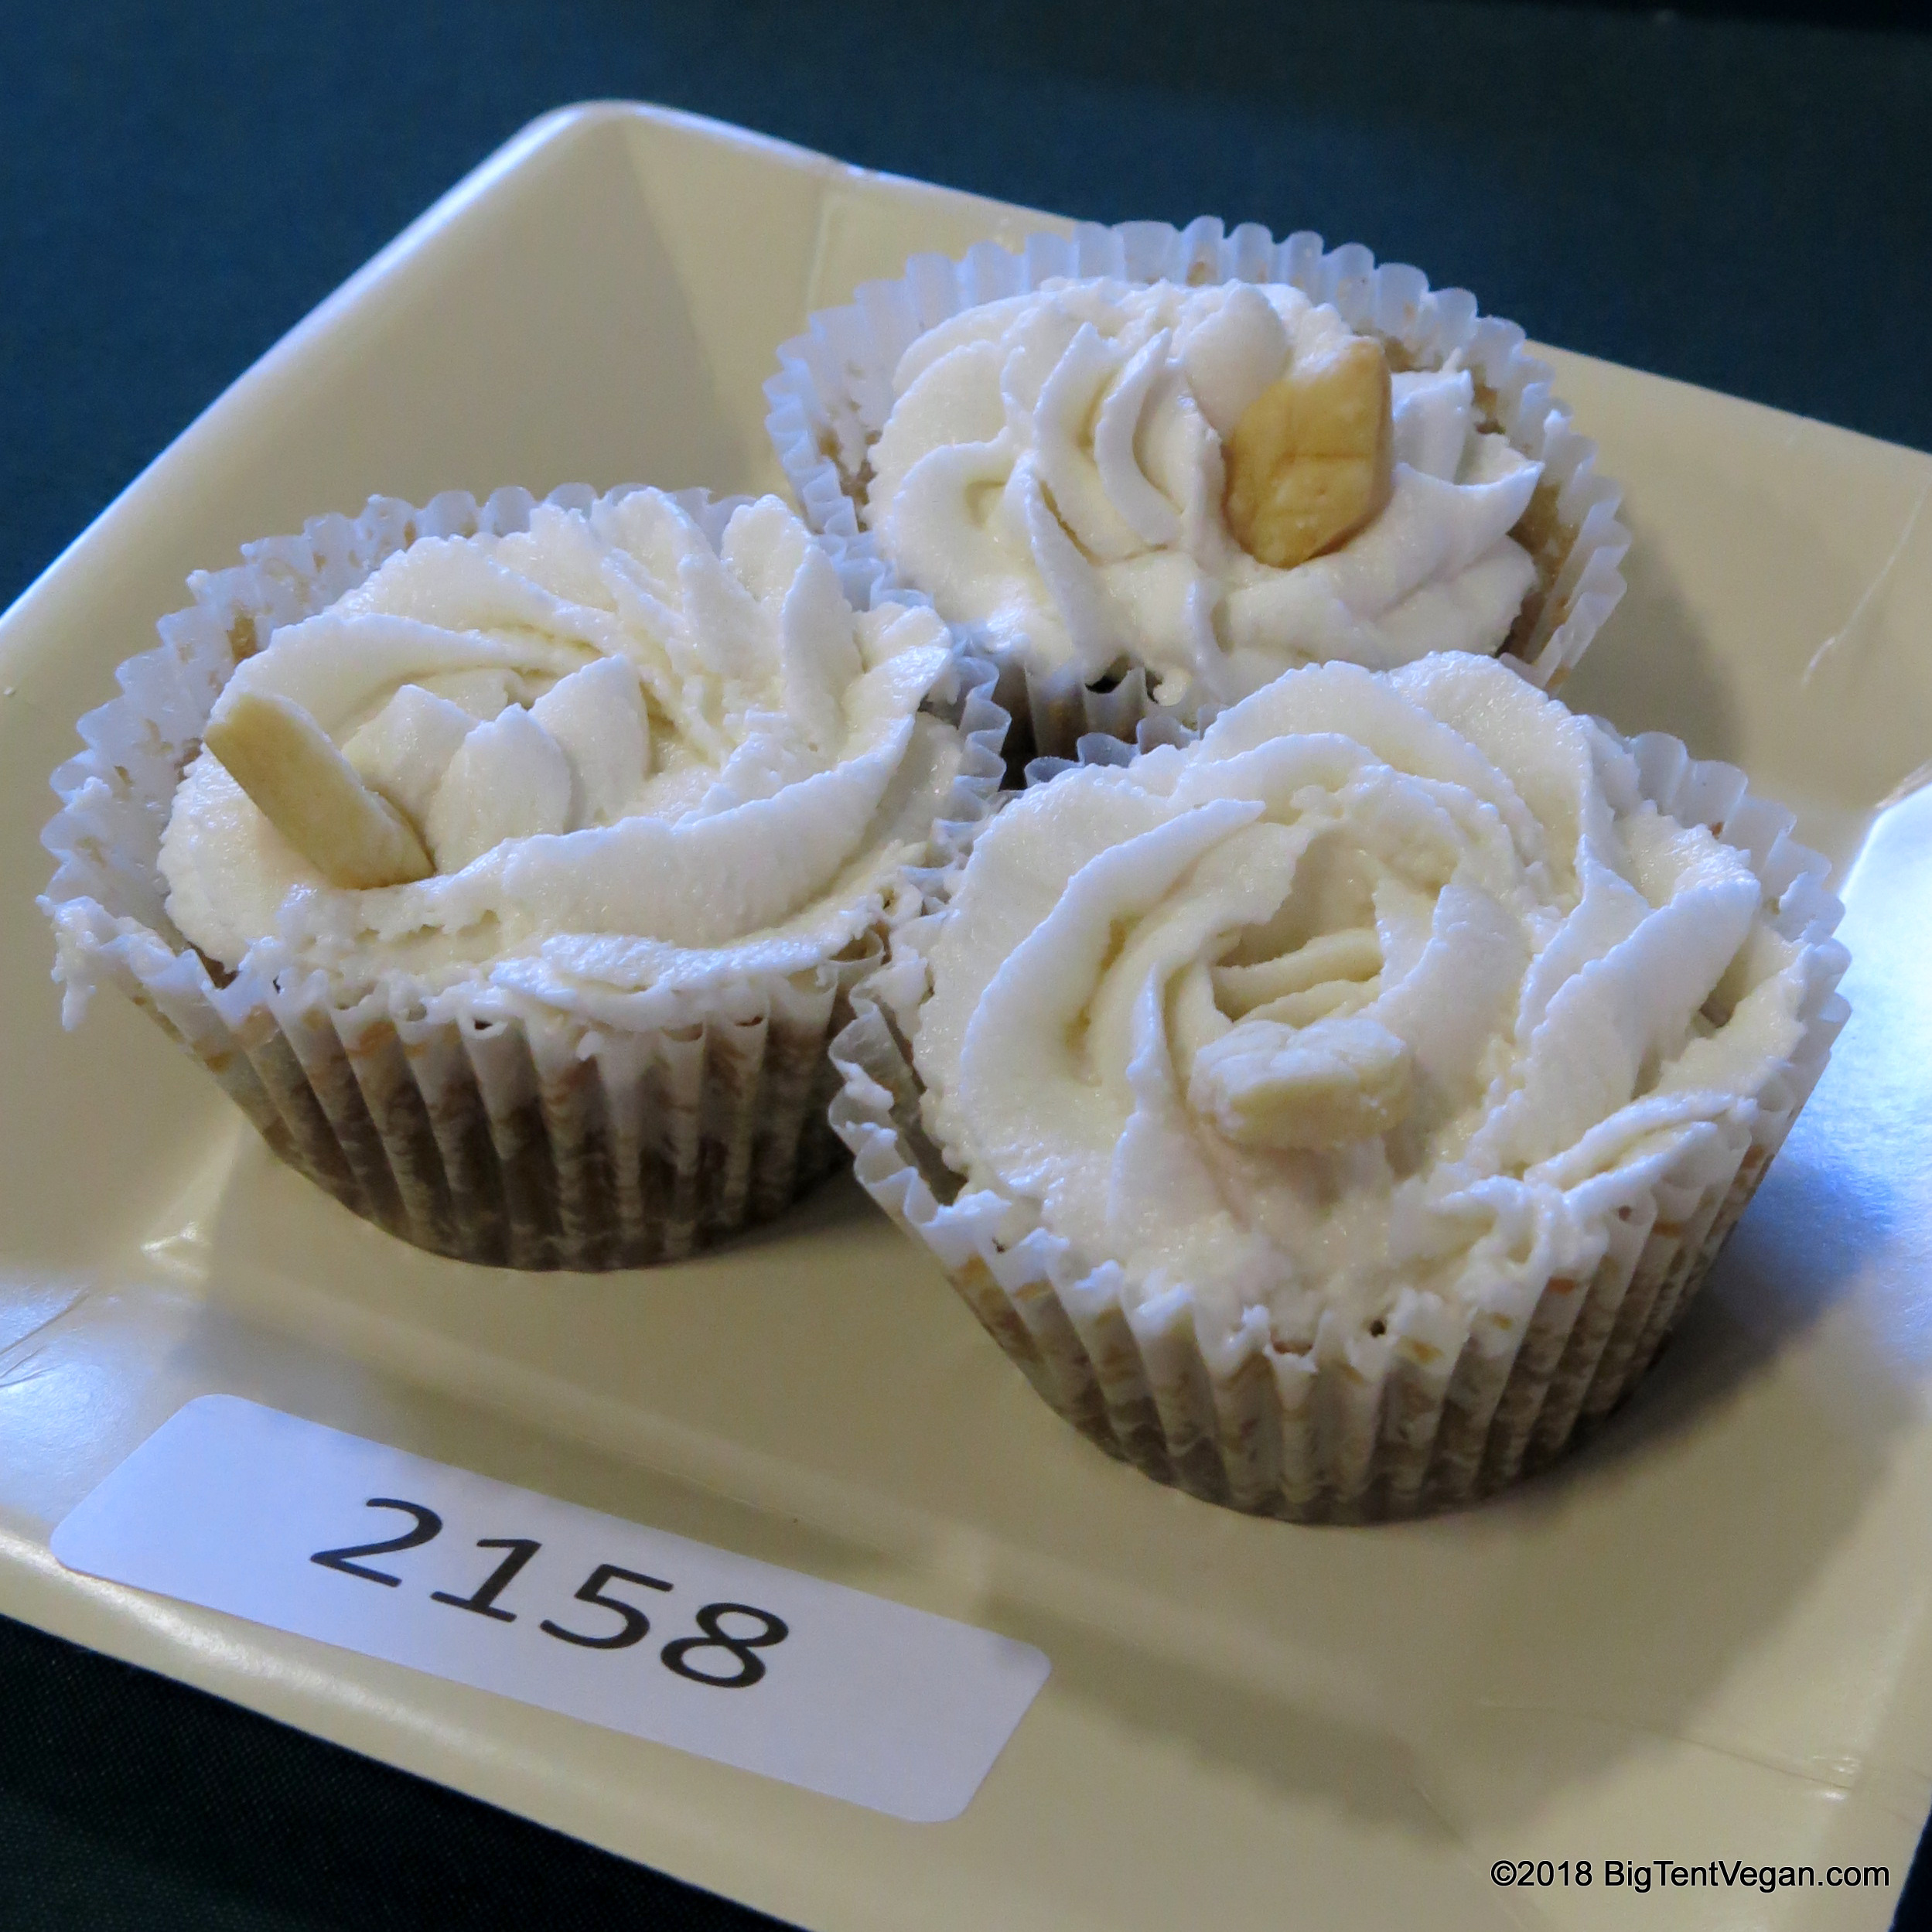 *1st PLACE and BEST OF SHOW*: Mia Bilello     Pecan Pie Cupcakes